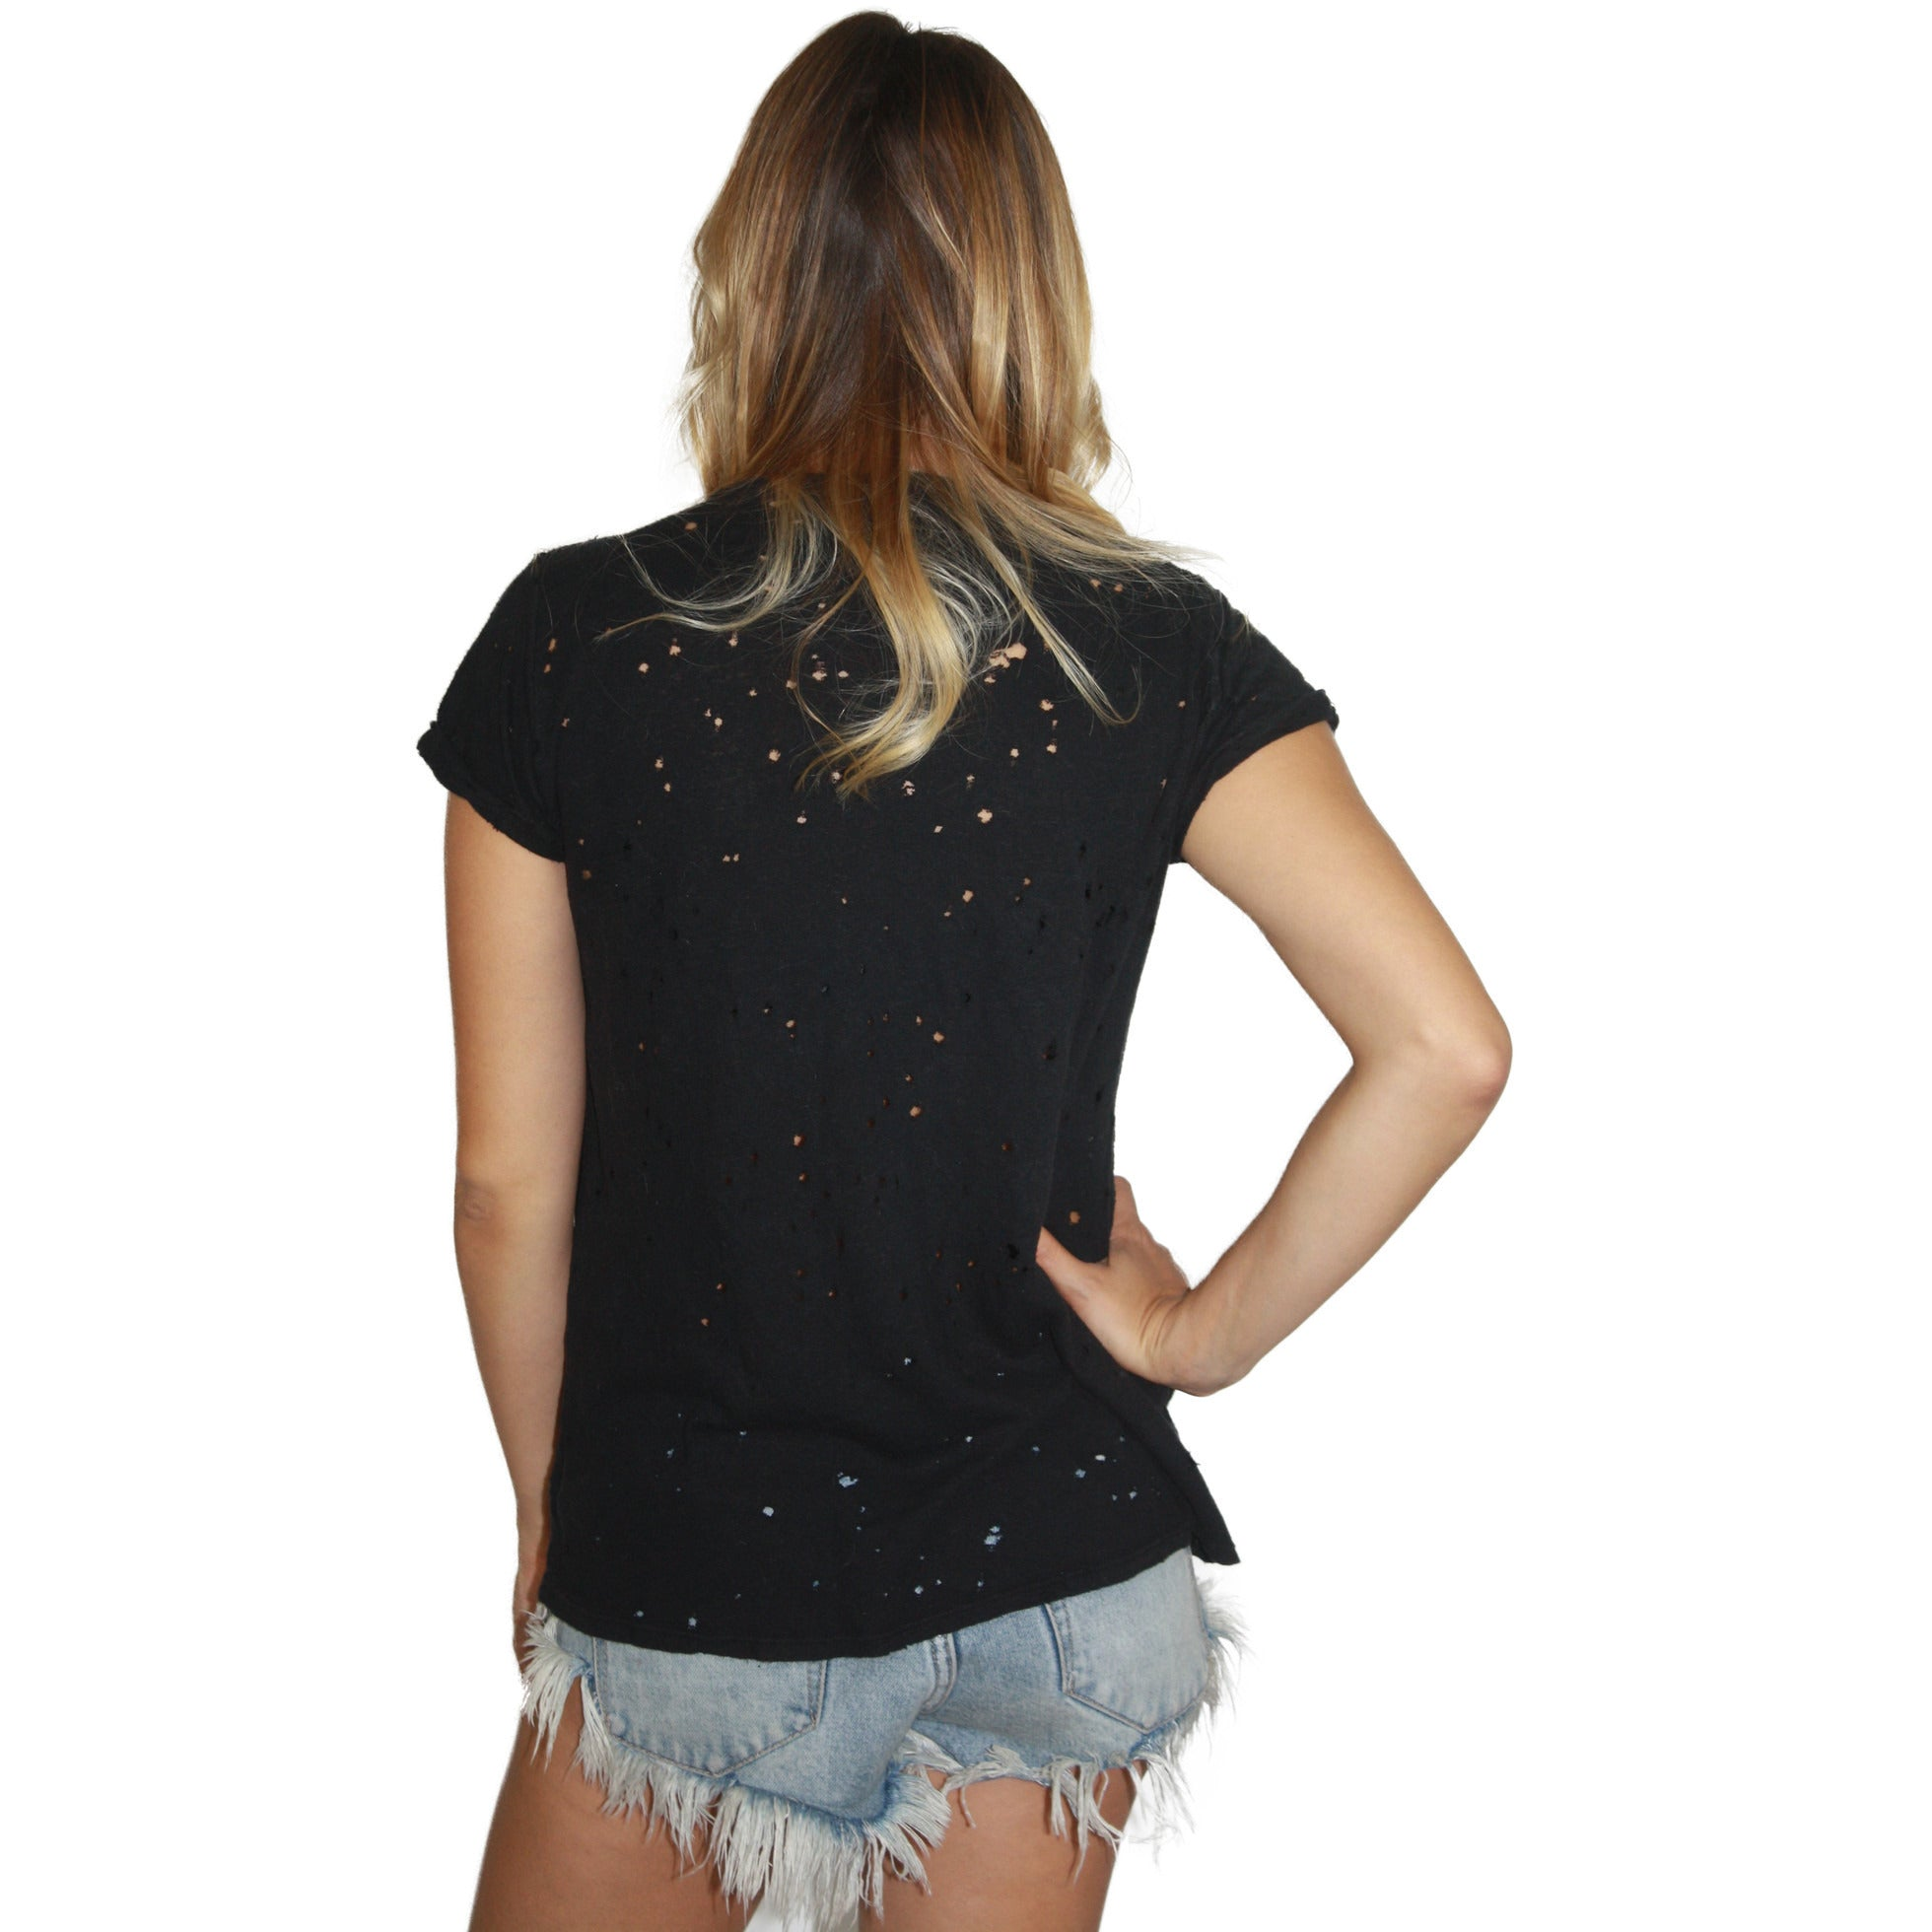 Black Bess Tee in Star Eye Skull